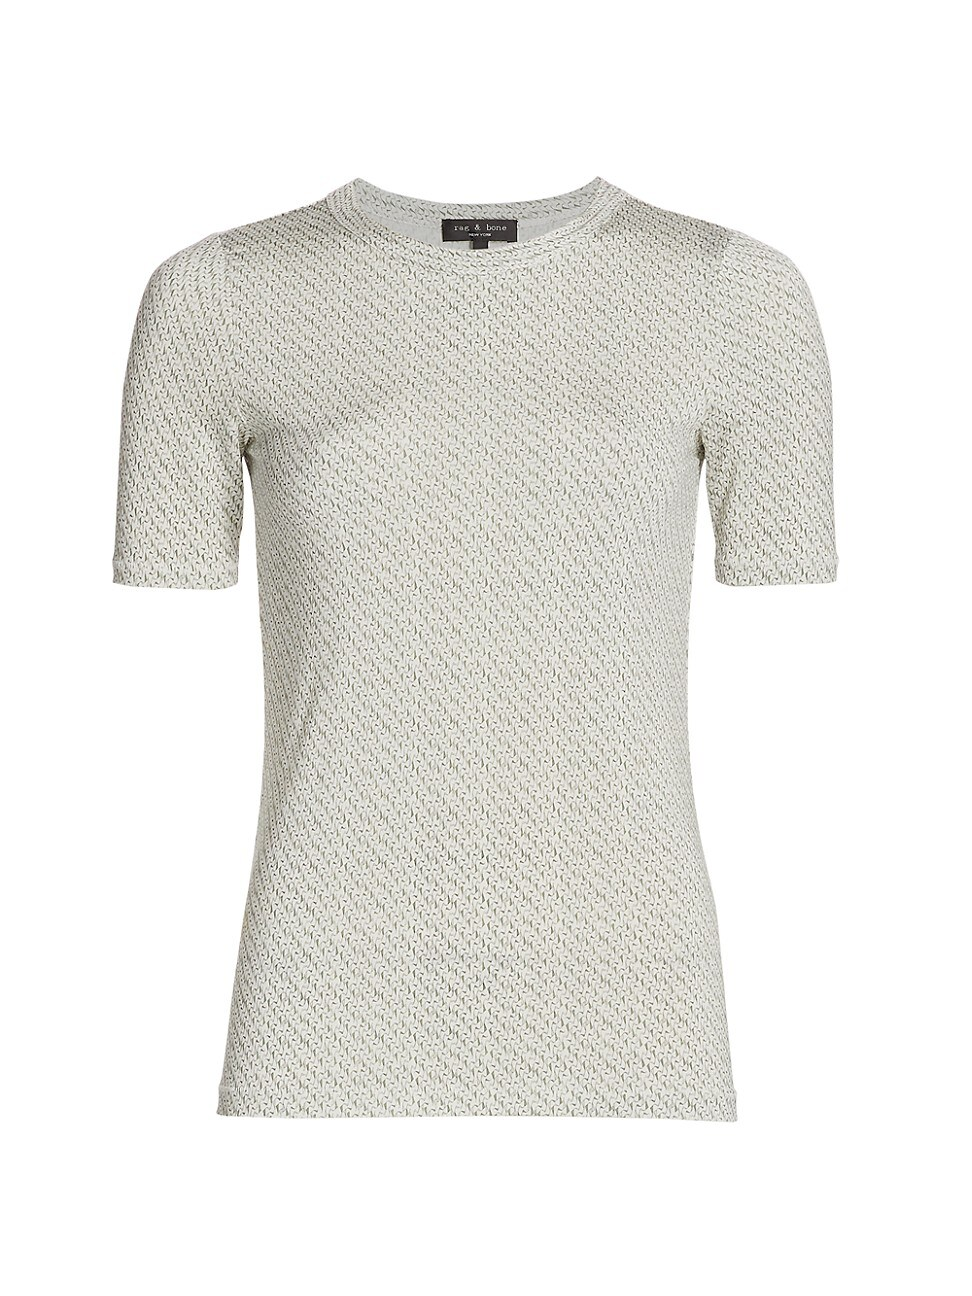 Rag & Bone WOMEN'S SABEEN SLIM-FIT T-SHIRT